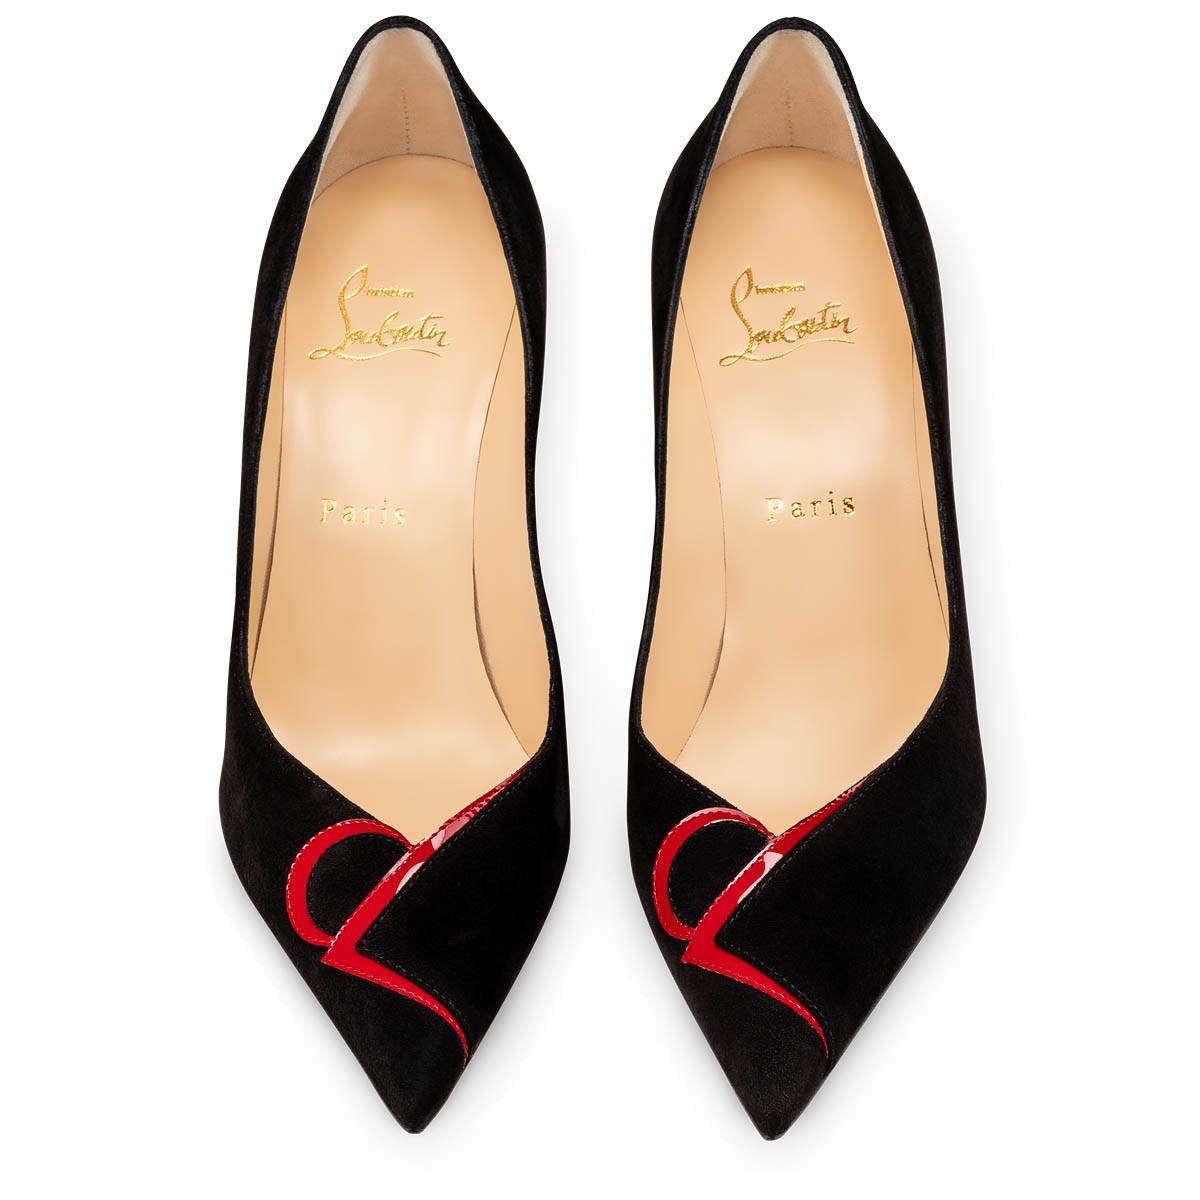 Shoes - Cl Pump - Christian Louboutin